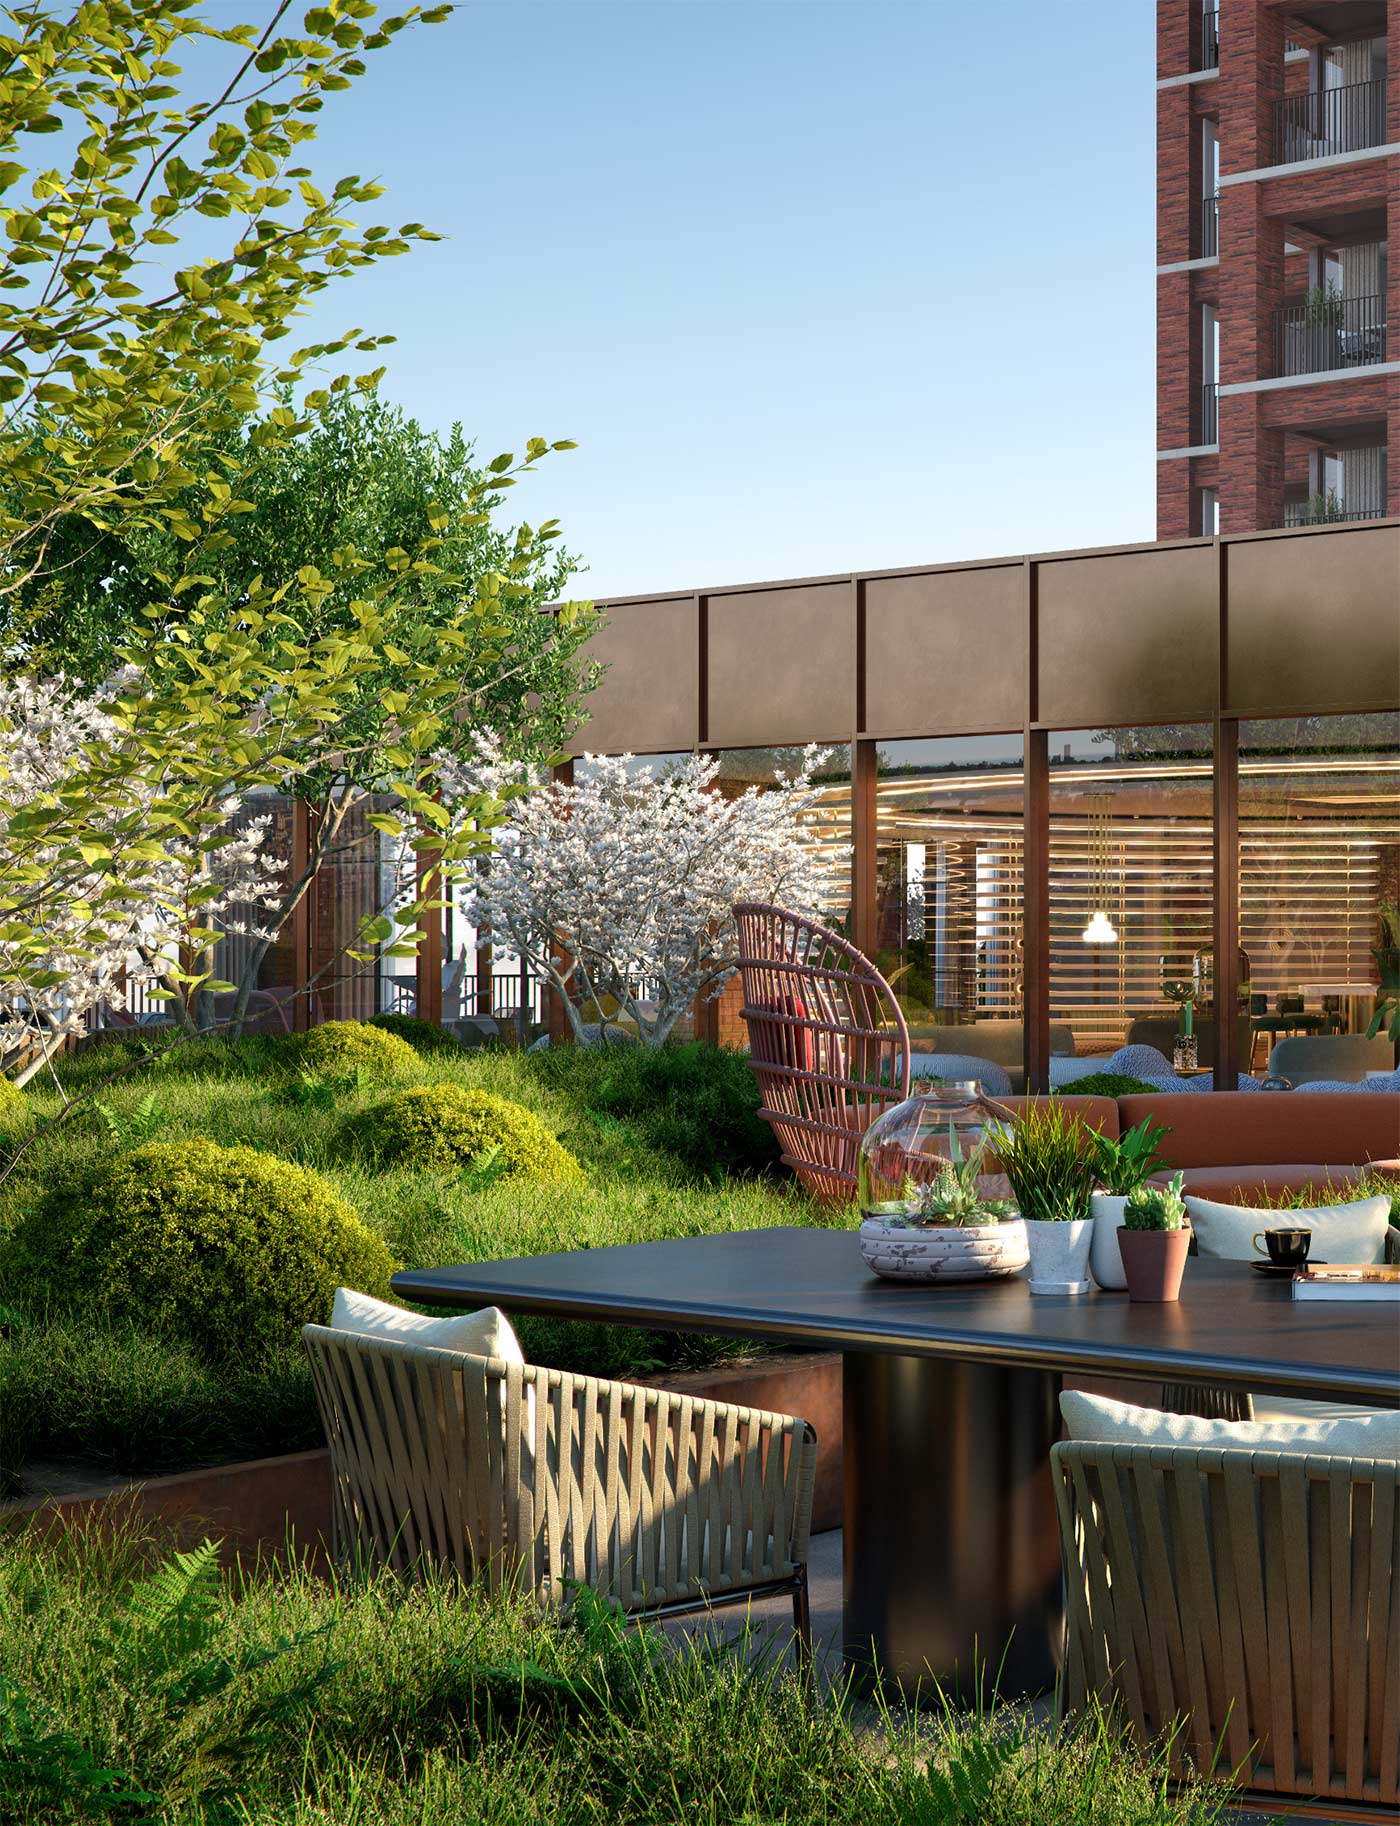 The Amenities - The Arc - London